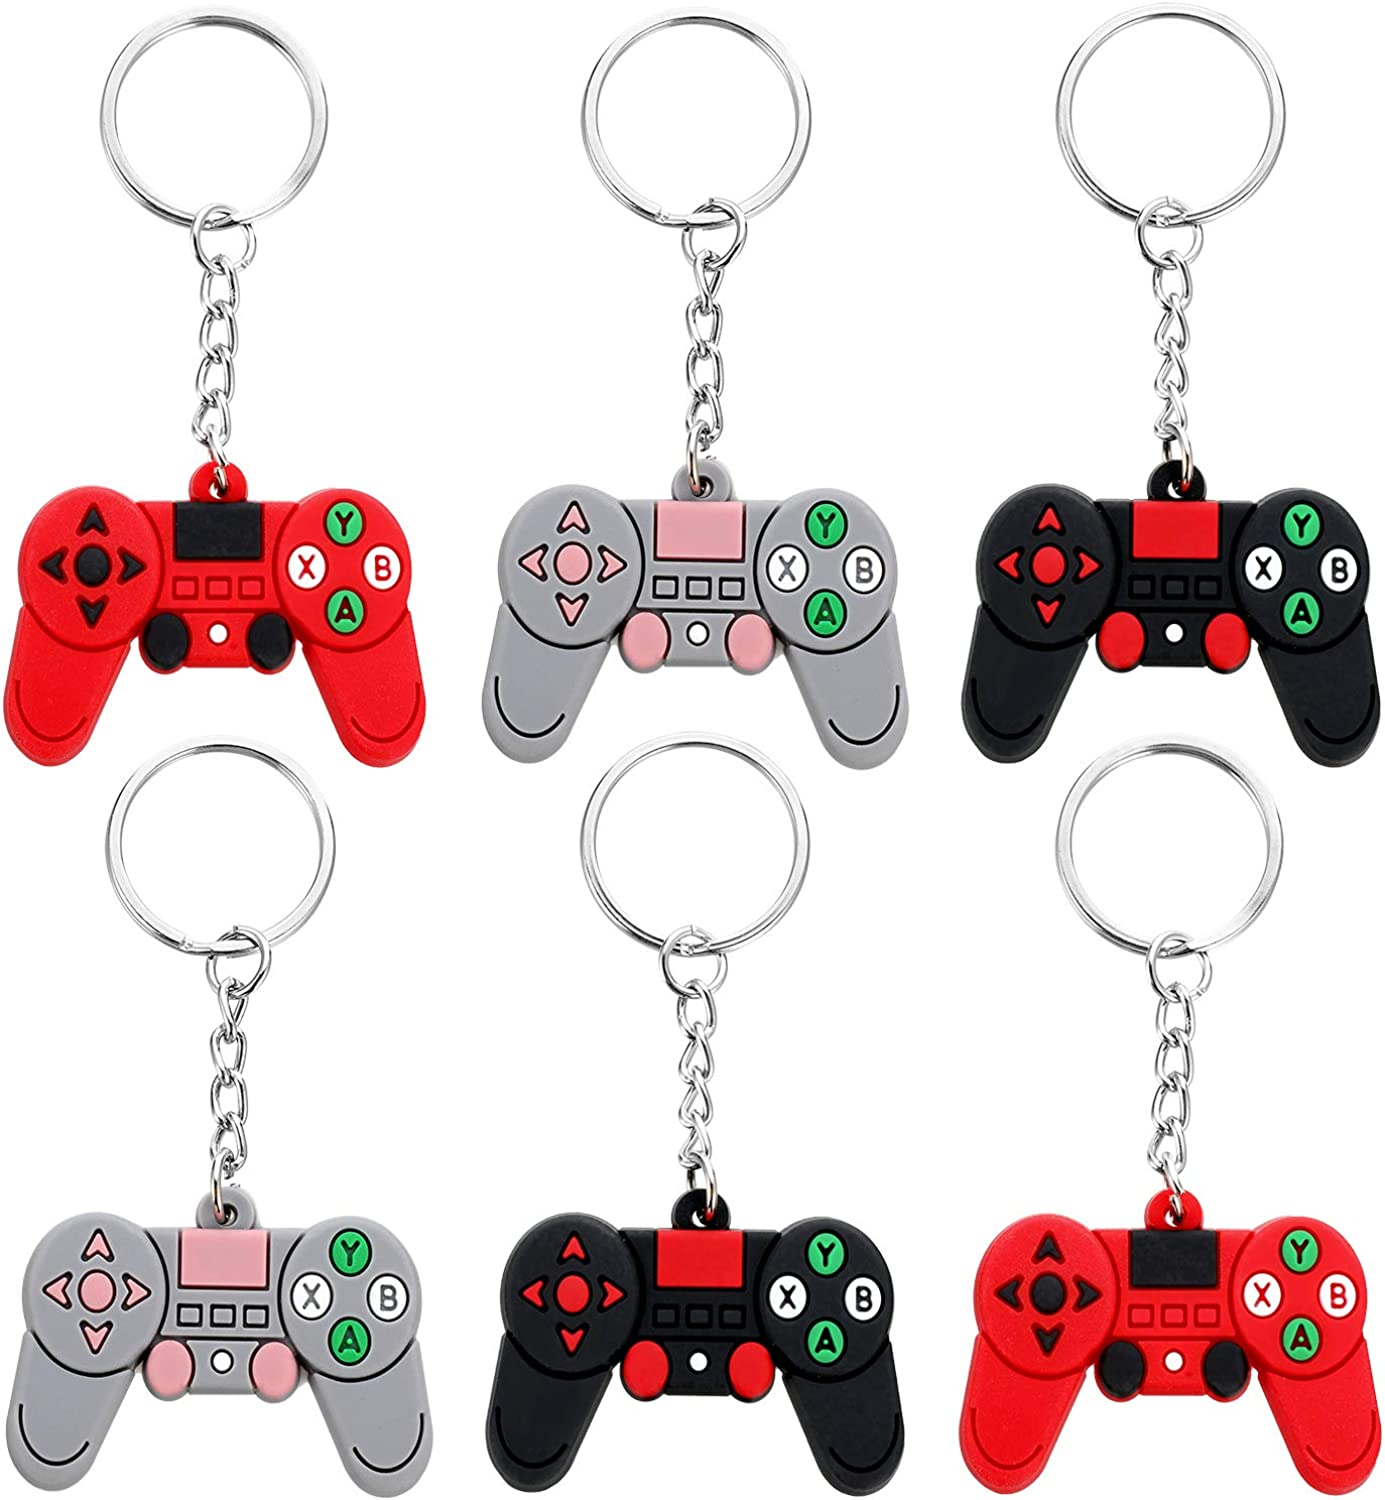 6 Styles 36 Pieces Video Game Bracelets and Keychains Rubber Wristbands and Keychains for Gamer Birthday Party Baby Shower Party Favors